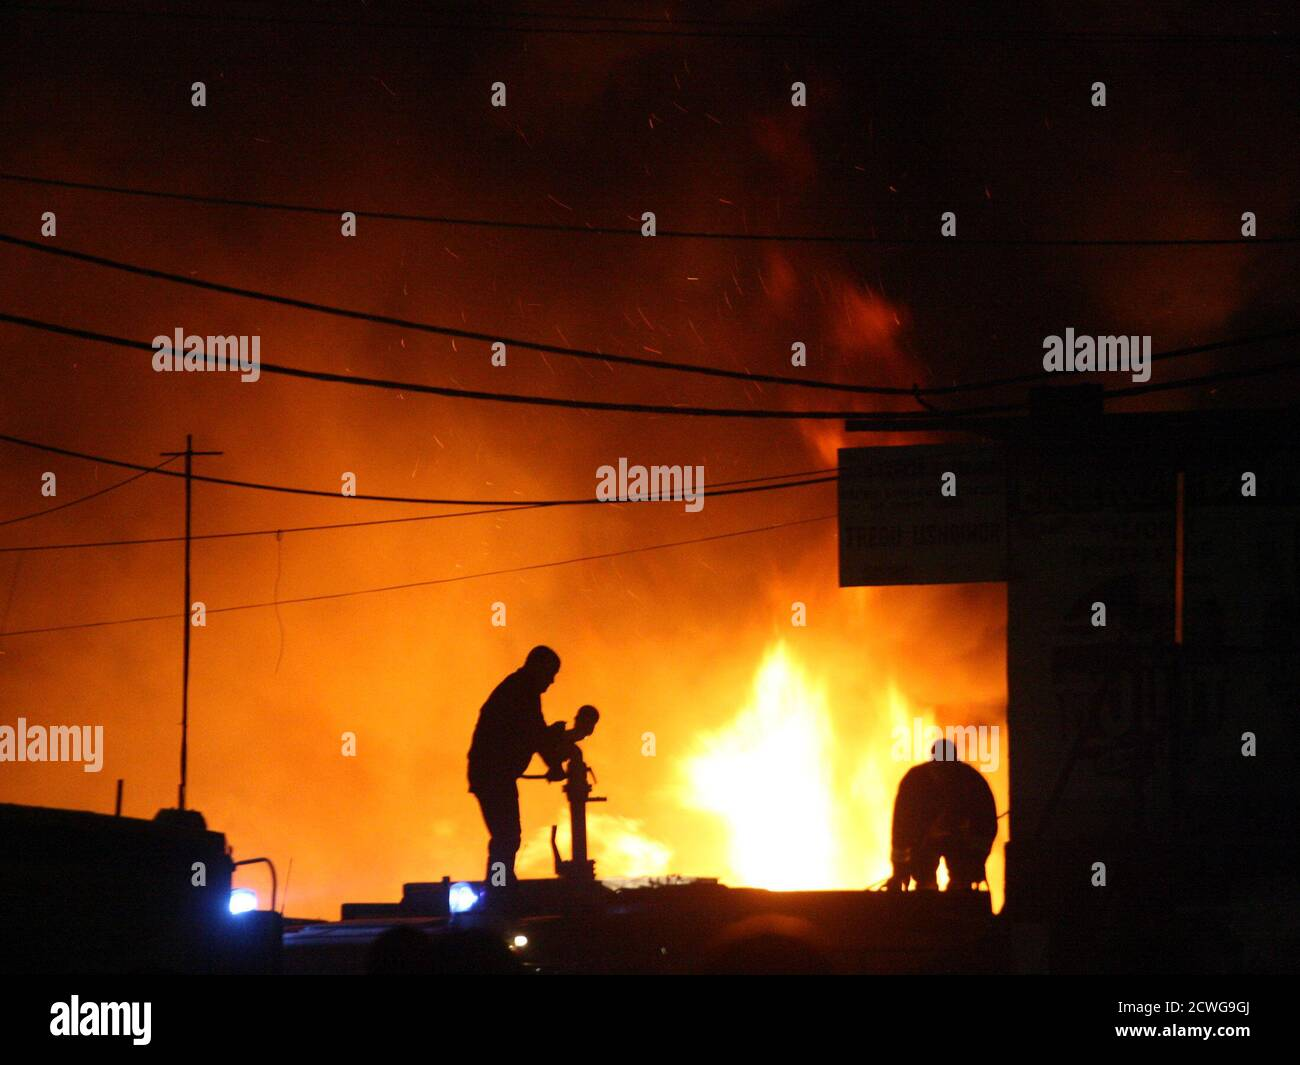 Two Albanian firefighters try to put out a huge fire, which started at a fireworks warehouse in Tirana November 21, 2011. Some shops and warehouses nearby burnt to the ground, but there were no deaths or injuries, according to a police spokesman.   REUTERS/Arben Celi (ALBANIA - Tags: DISASTER TPX IMAGES OF THE DAY) Stock Photo